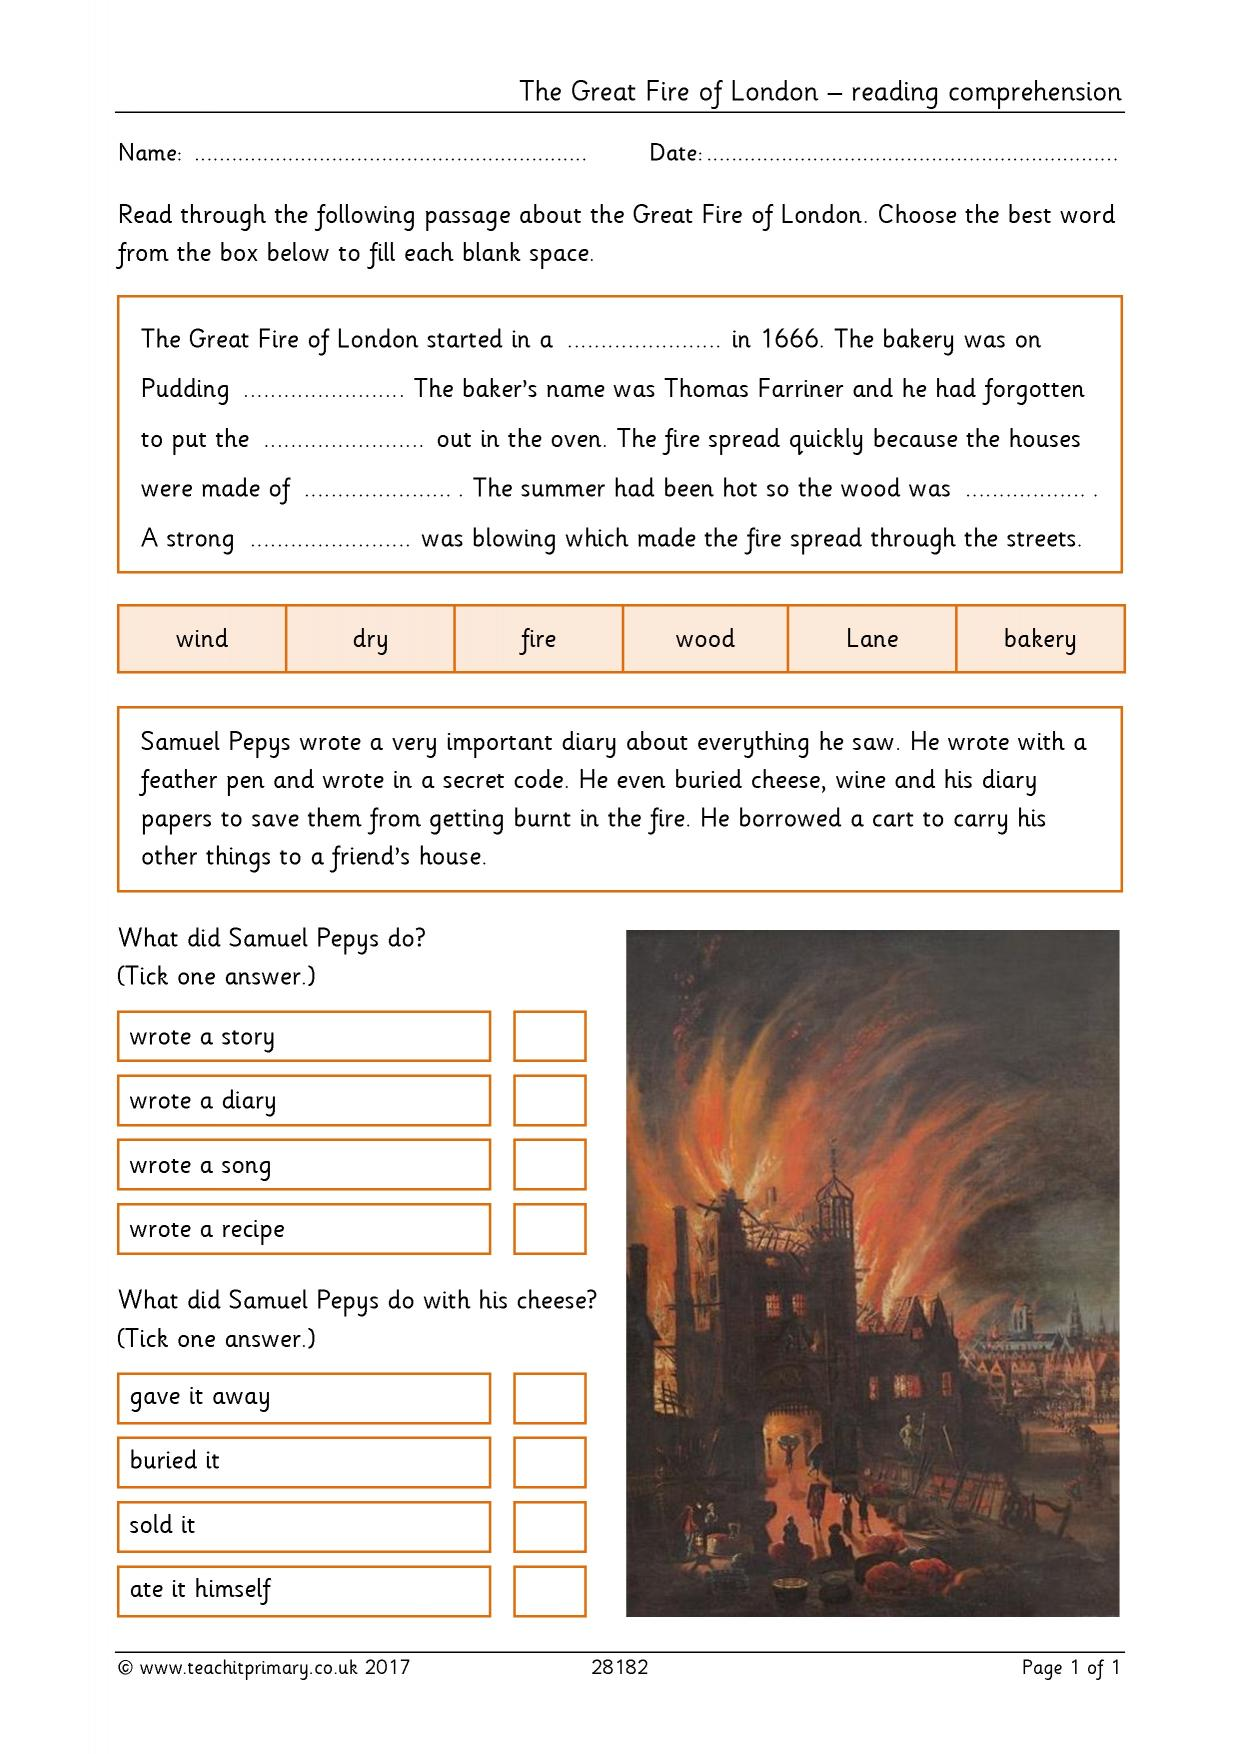 The Great Fire Of London Reading Comprehension